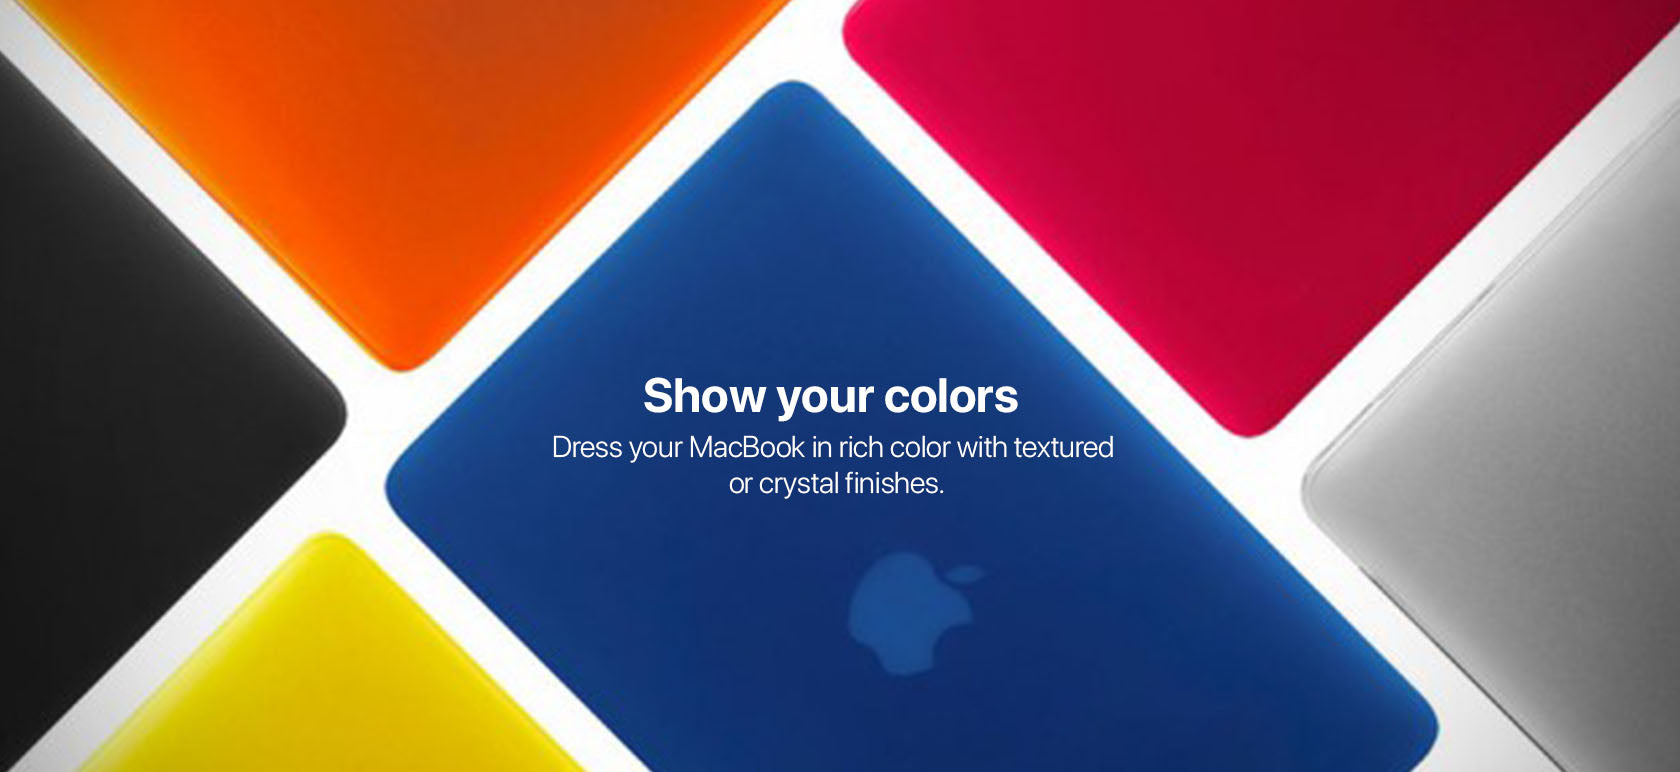 Show your colors. Dress your MacBook in rich color with textured or crystal finishes.